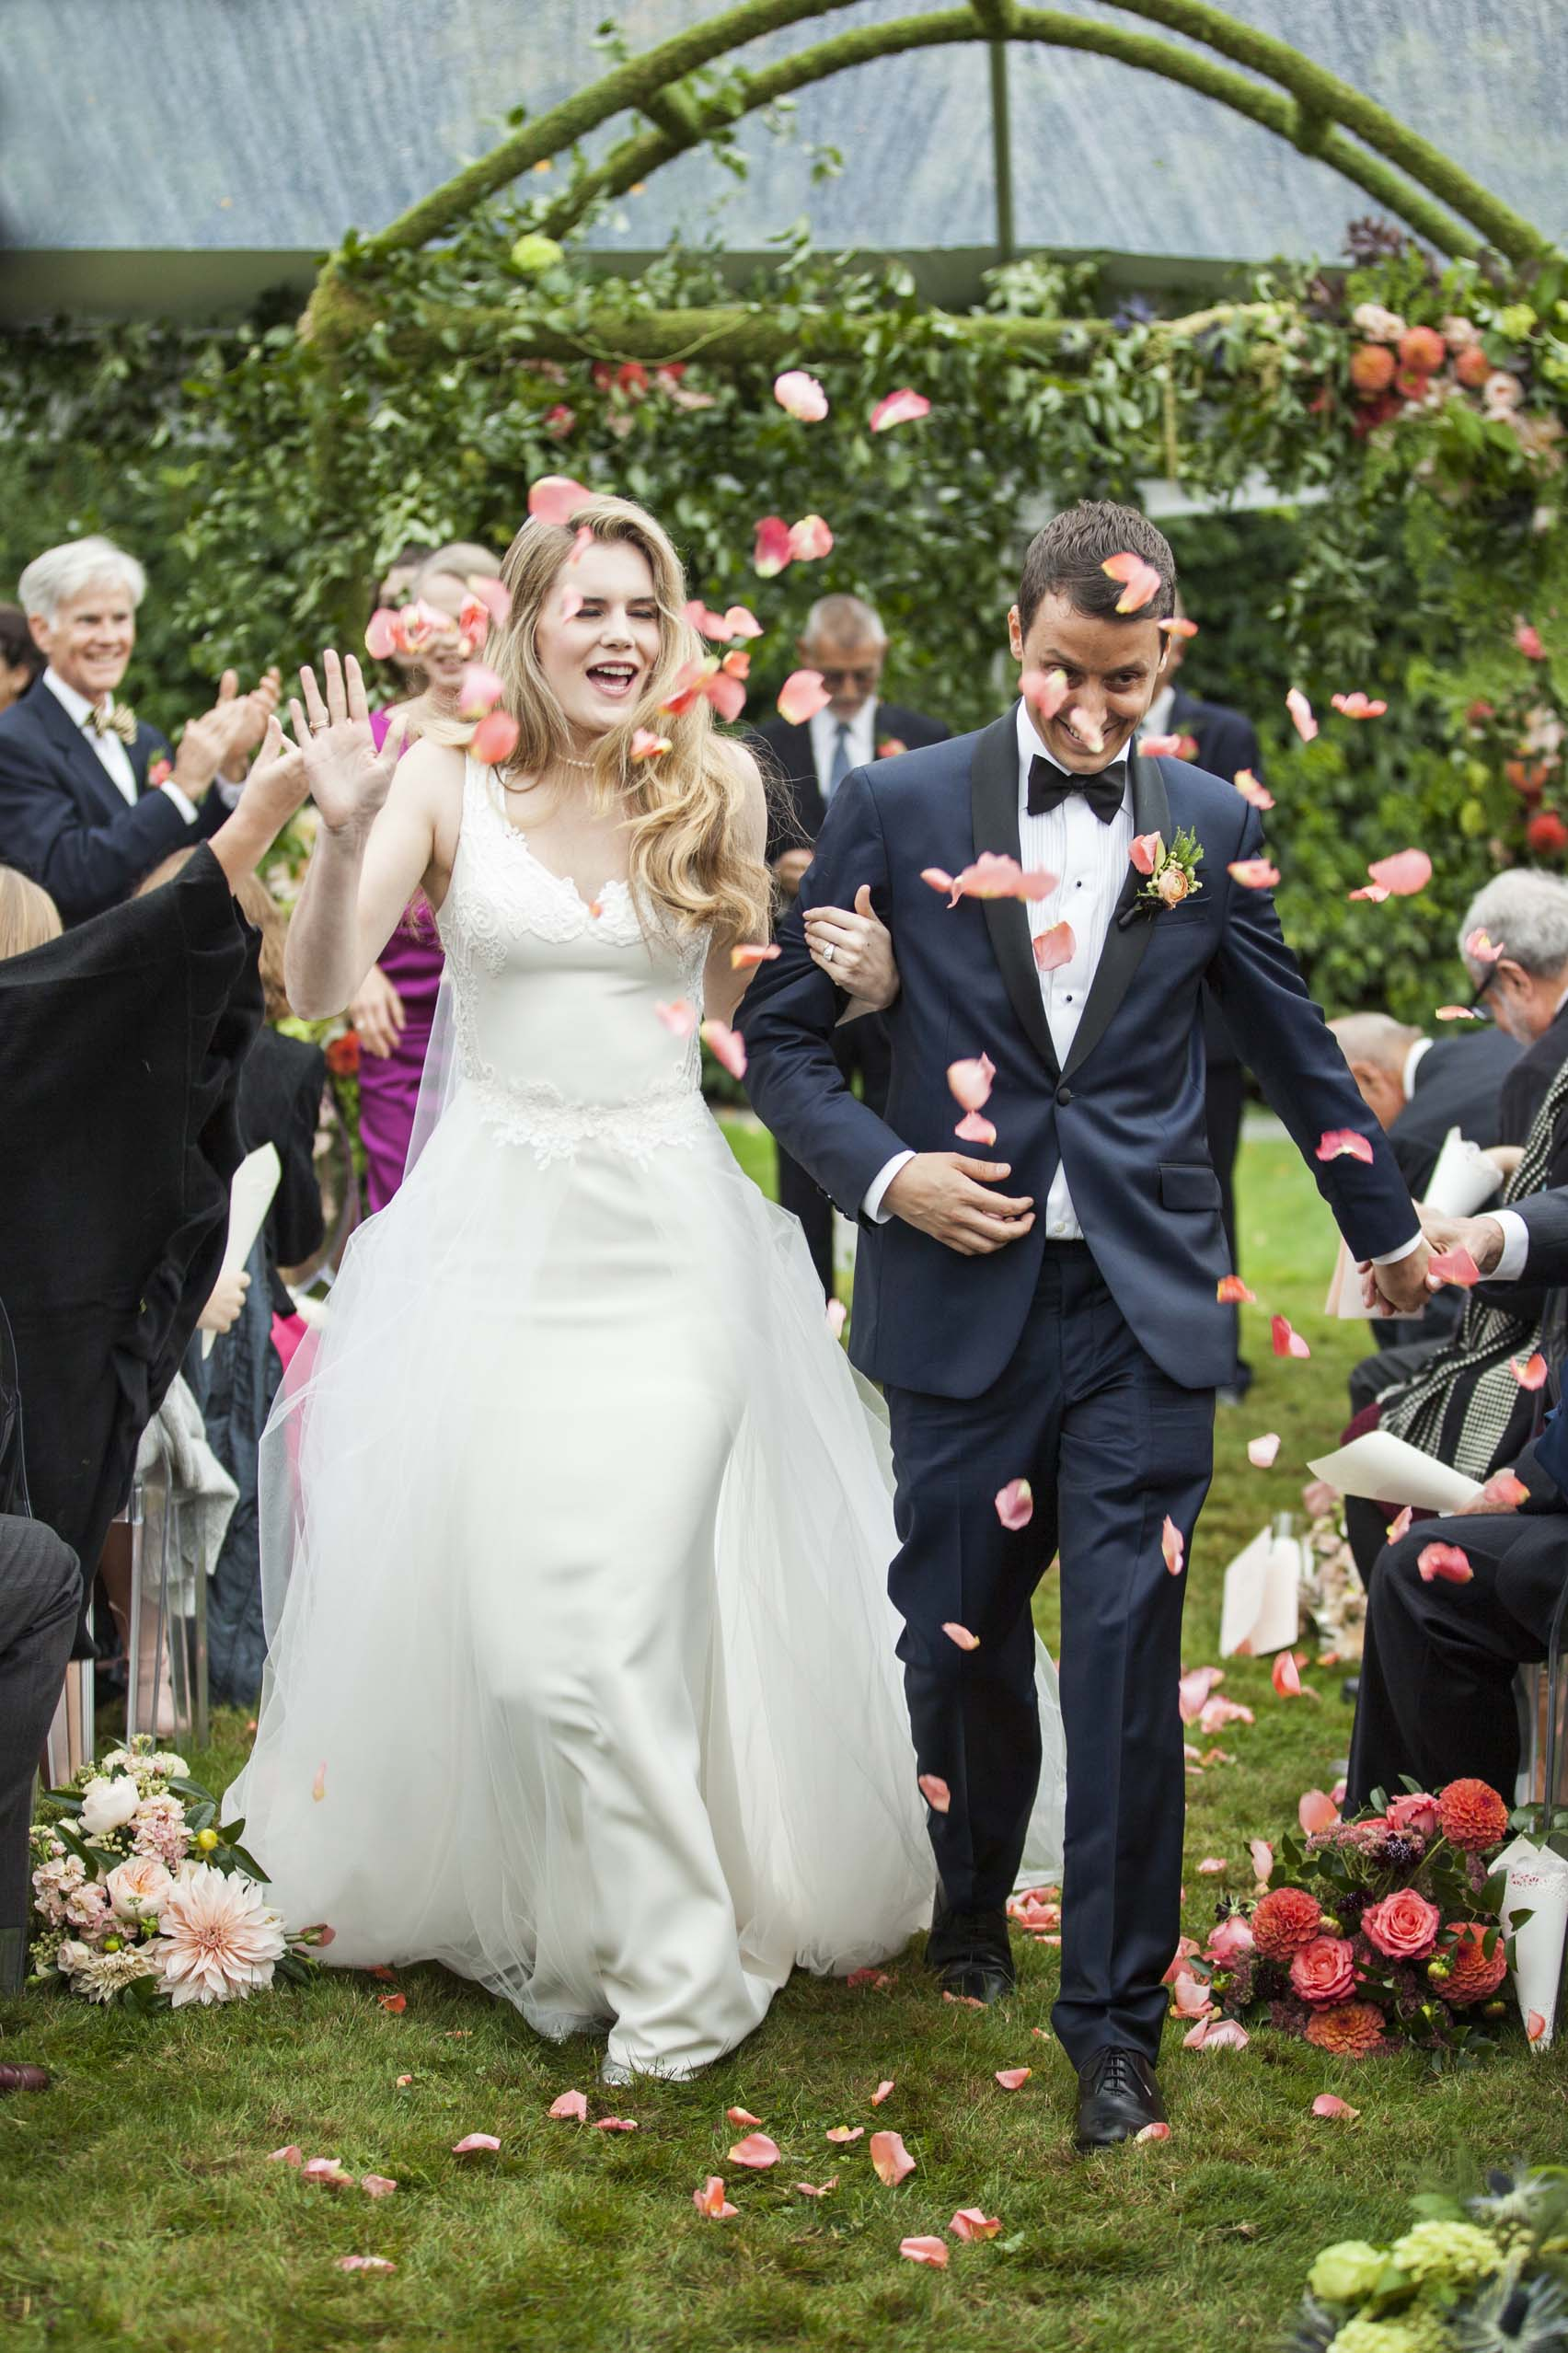 Bride and groom walking down aisle showered in rose petals at Pacific Northwest wedding